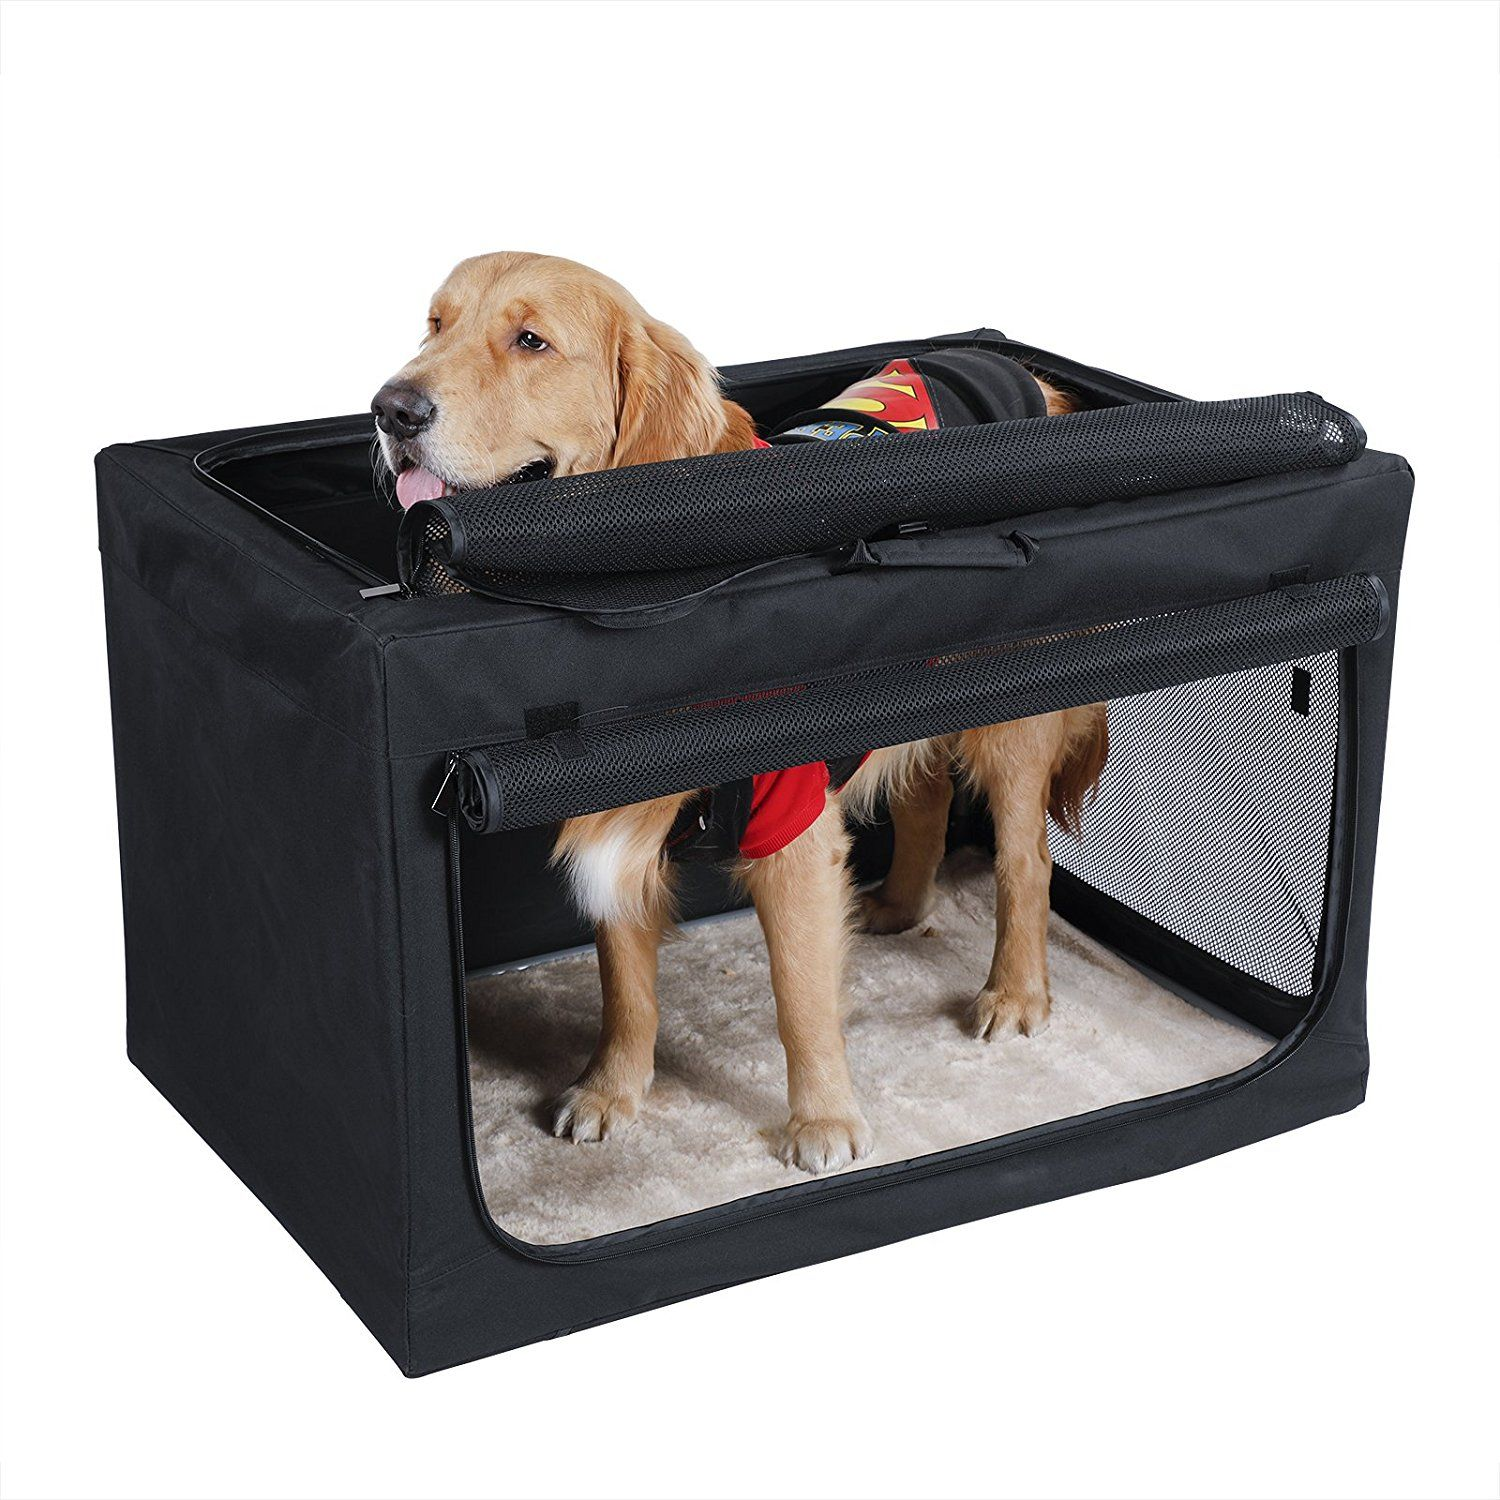 Petsfit Indoor Outdoor Soft Portable Foldable Travel Pet Dog Home Crate Cage Hope You Actually Do Enjoy Our Pictu Dog Crate Large Dog Crate Soft Dog Crates